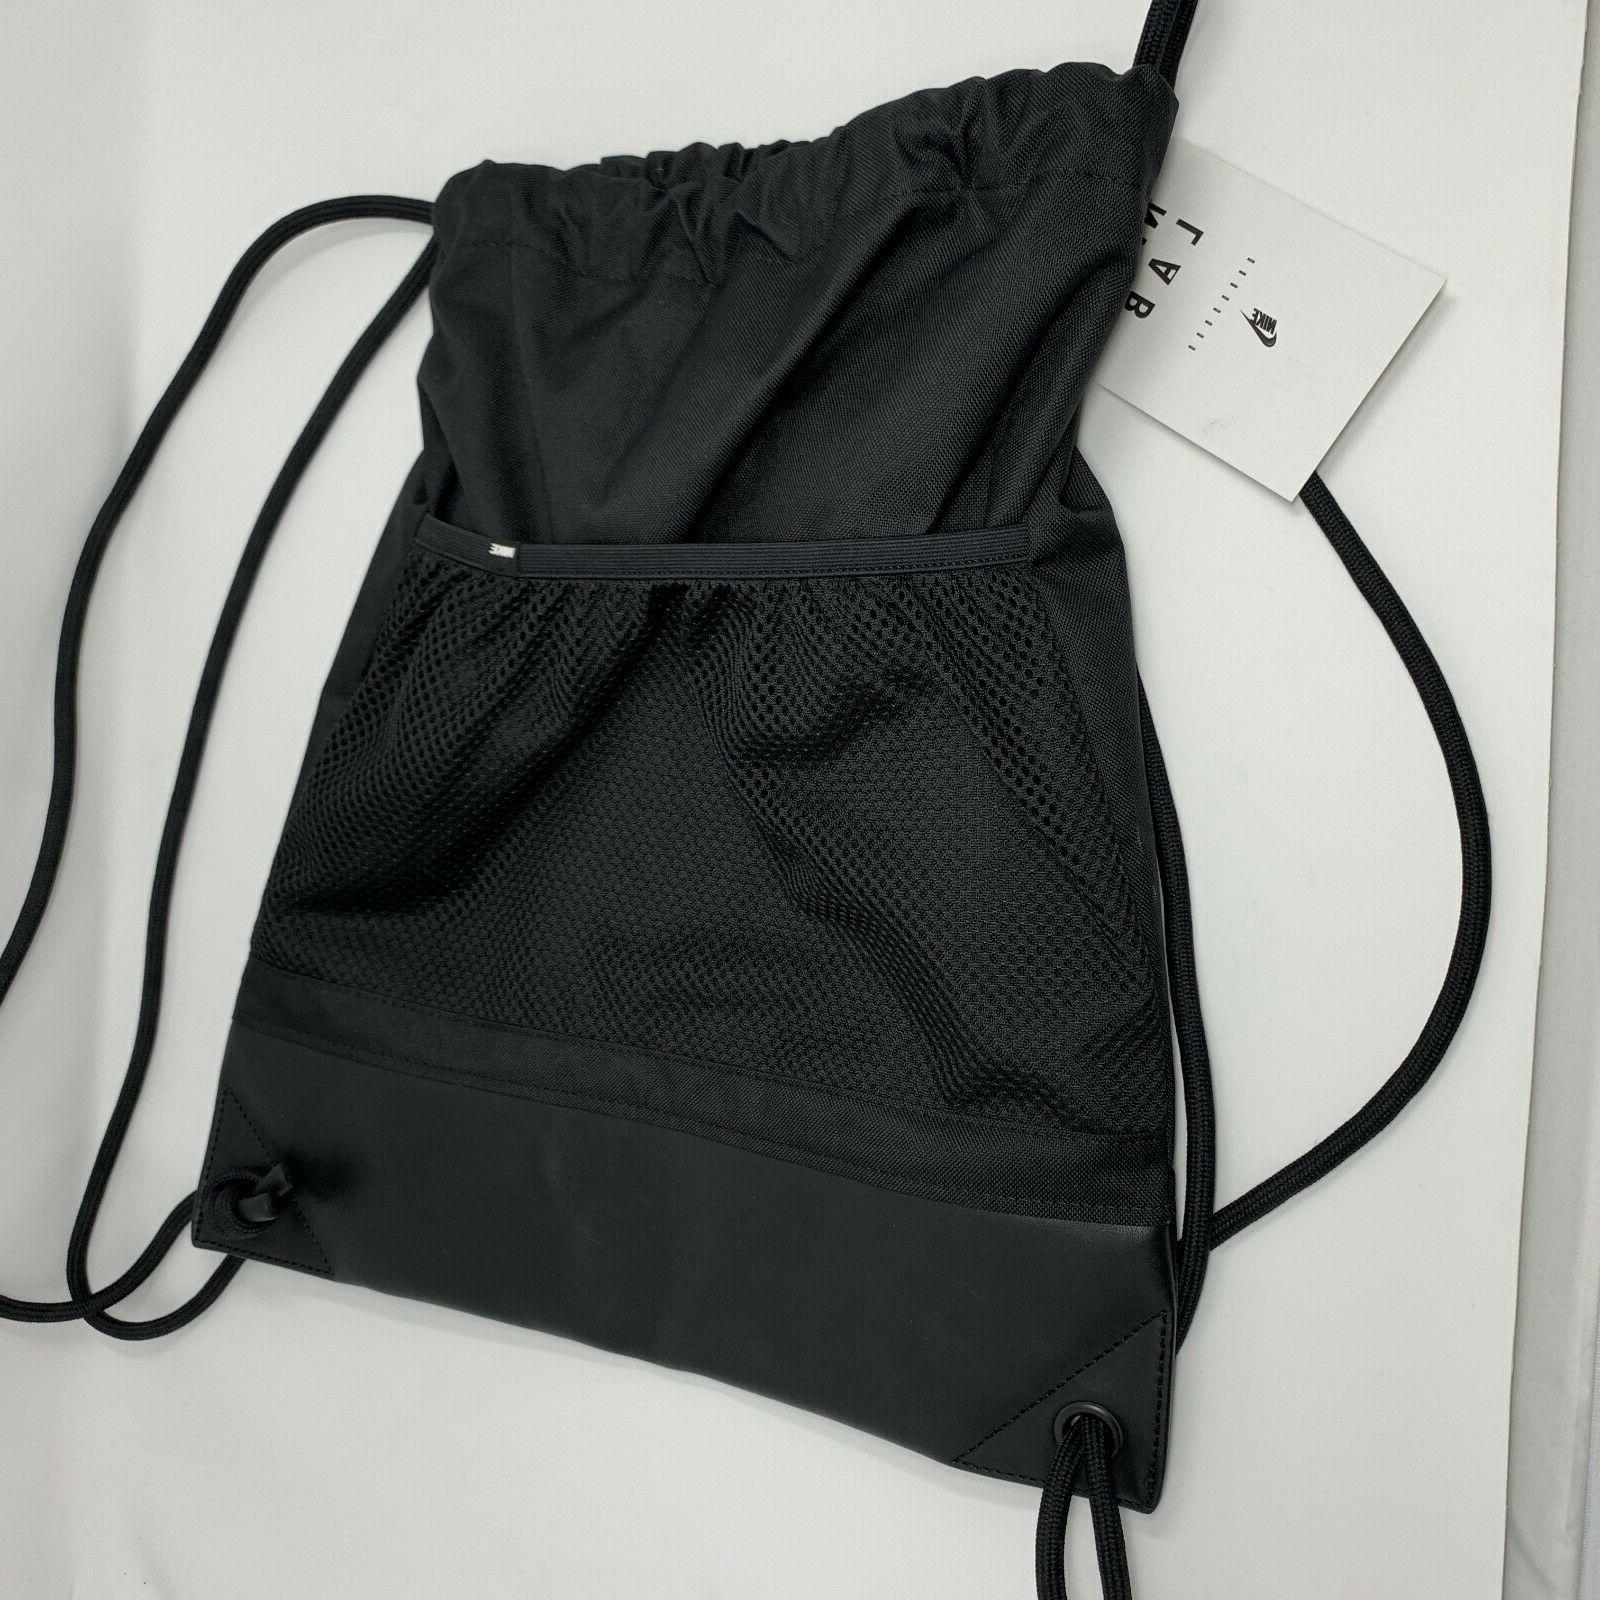 NikeLab Black Drawstring